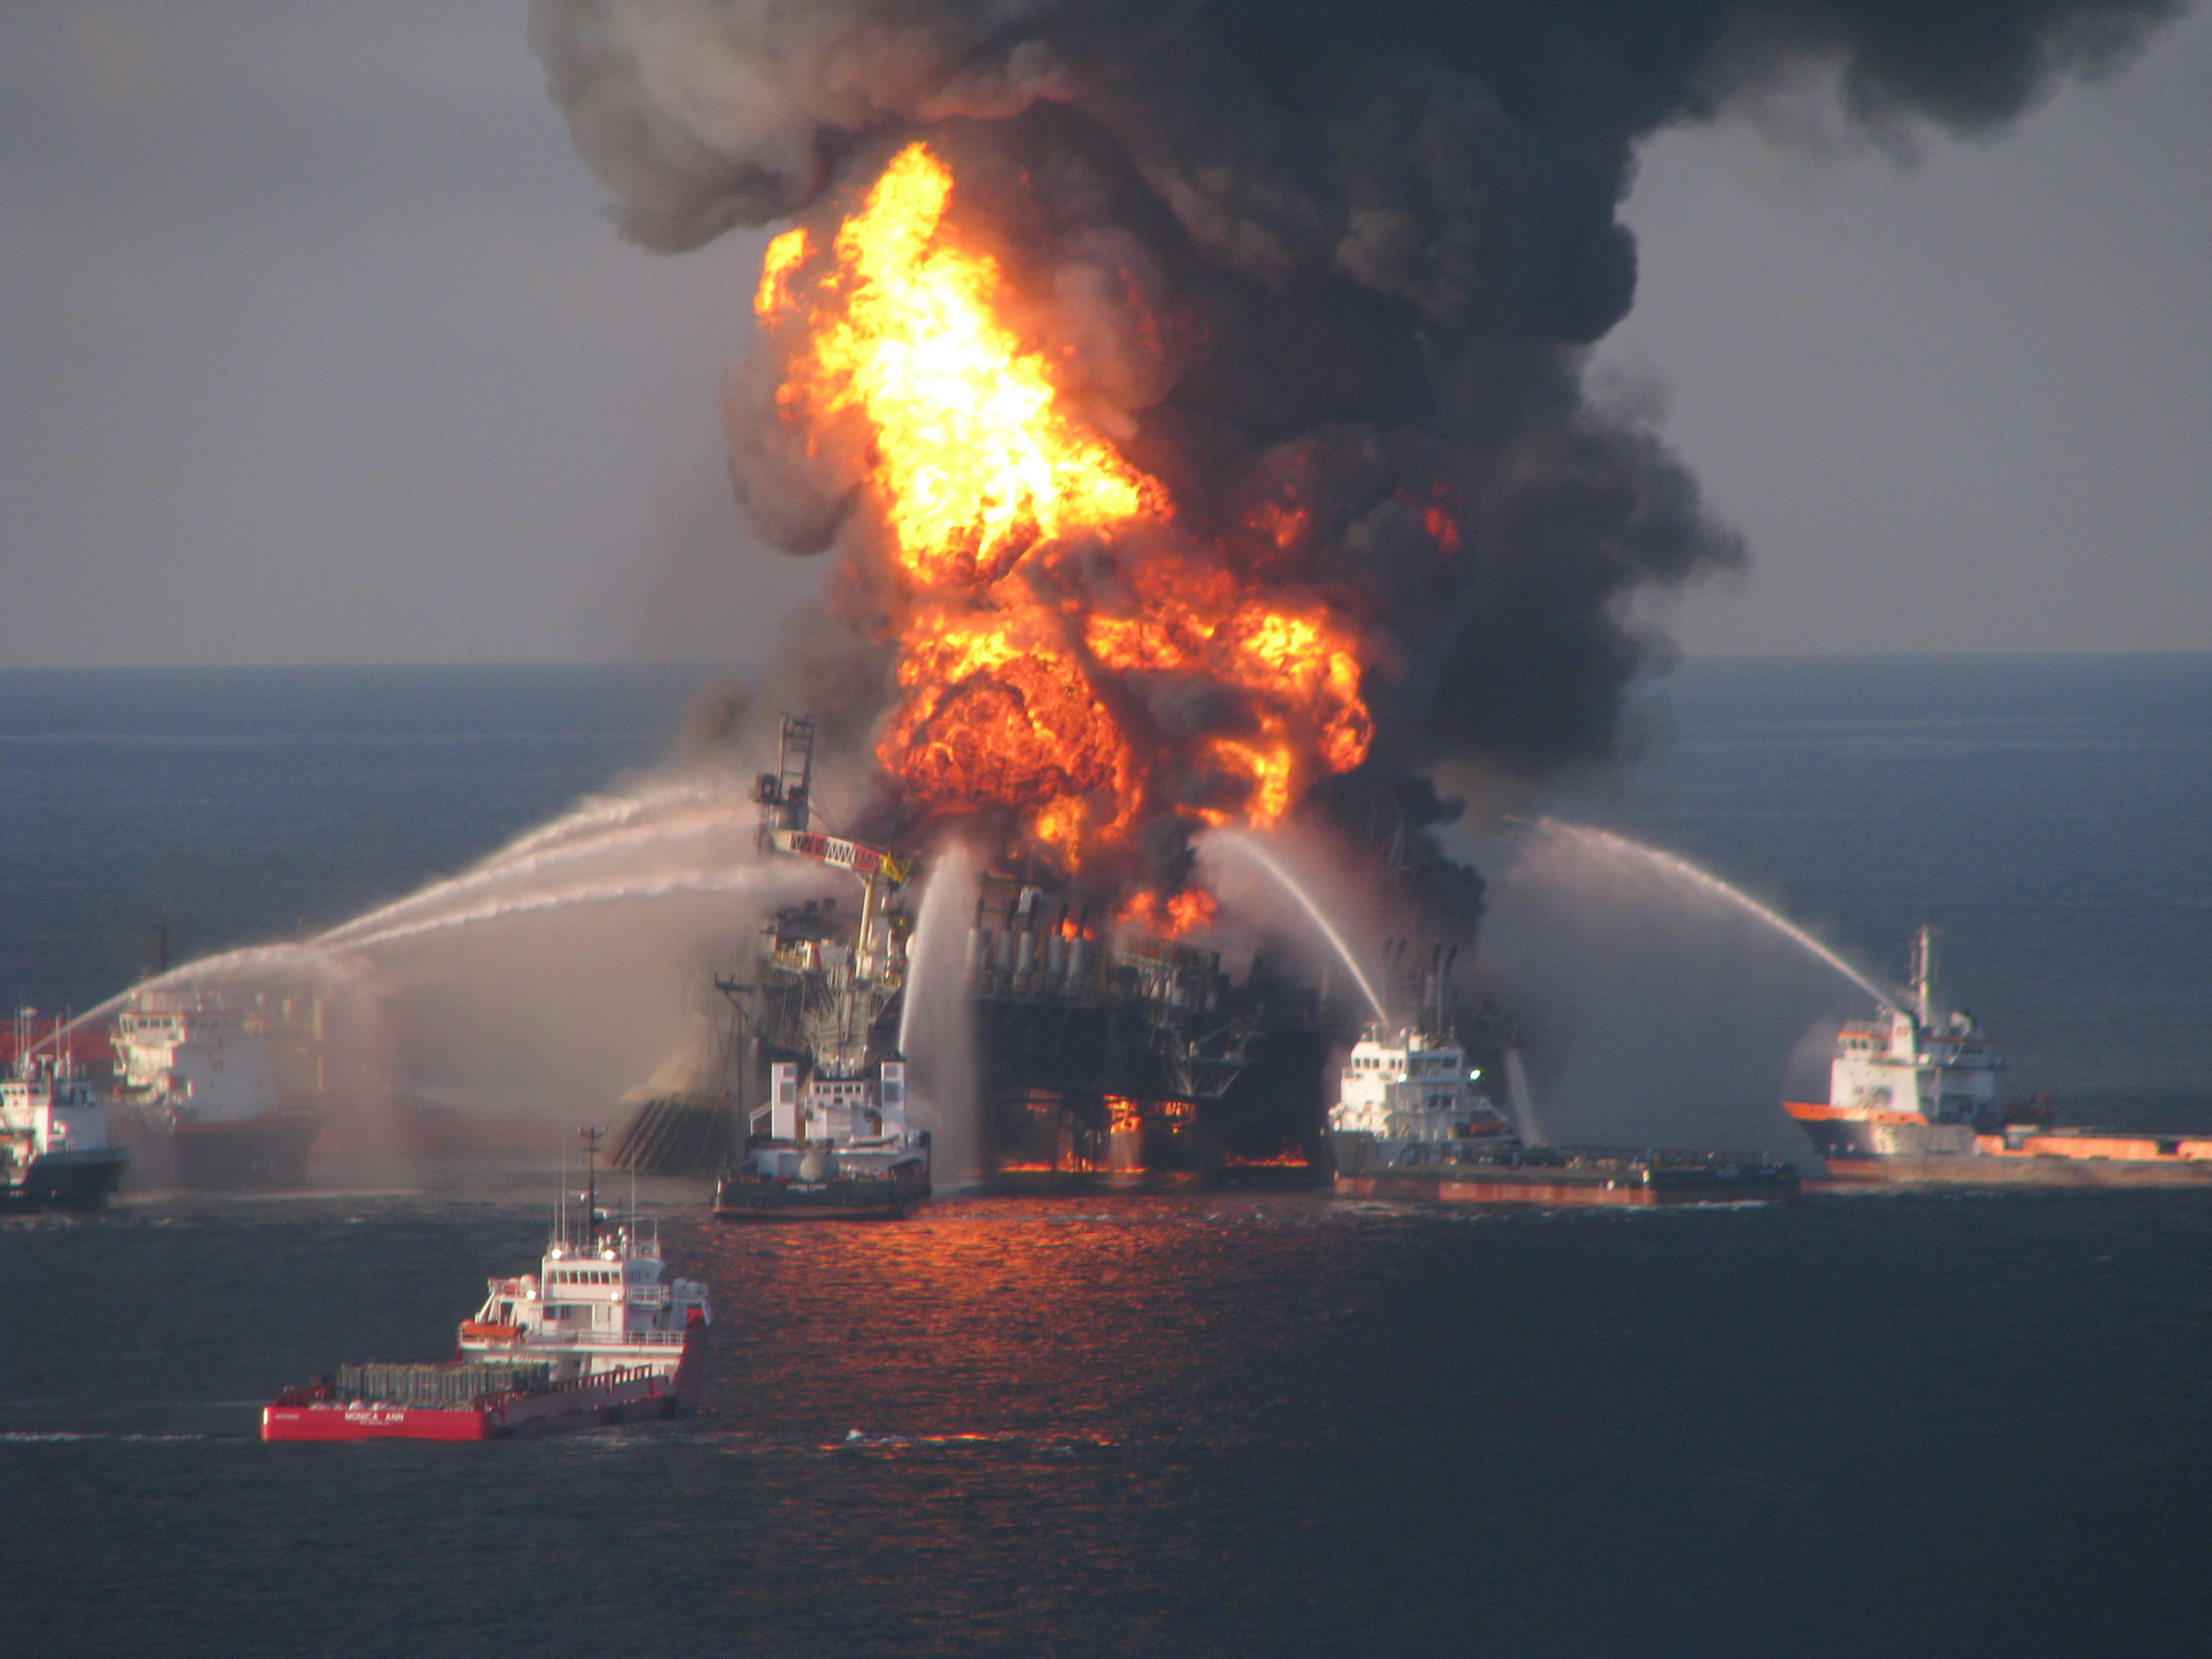 Firefighting ships attempt to put out the fire on BP's Deepwater Horizon drilling unit in the Gulf of Mexico